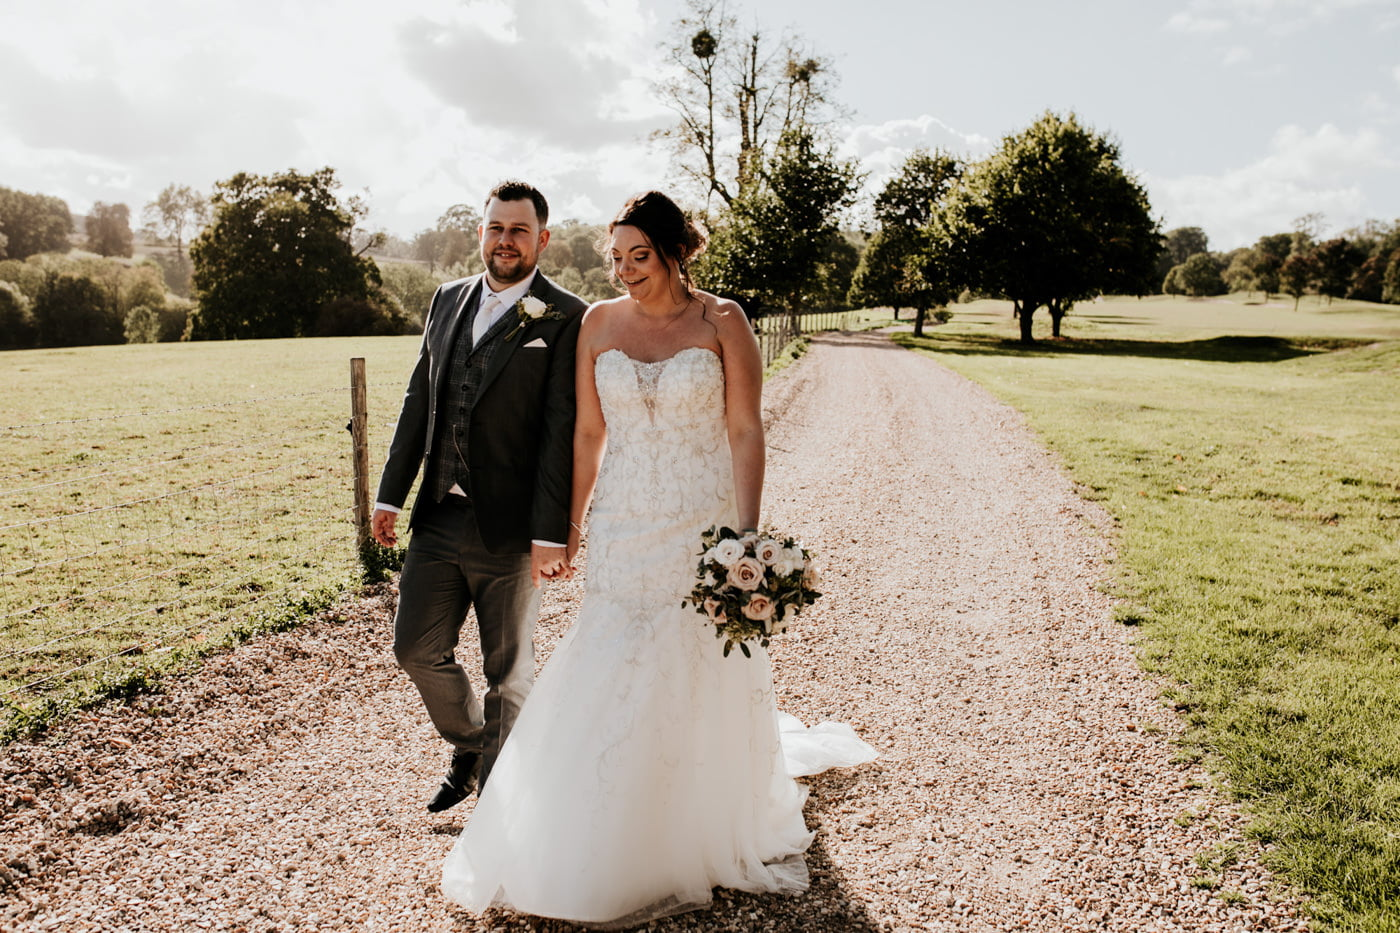 Leanne and Scott / Elmhay Park, Somerset 32